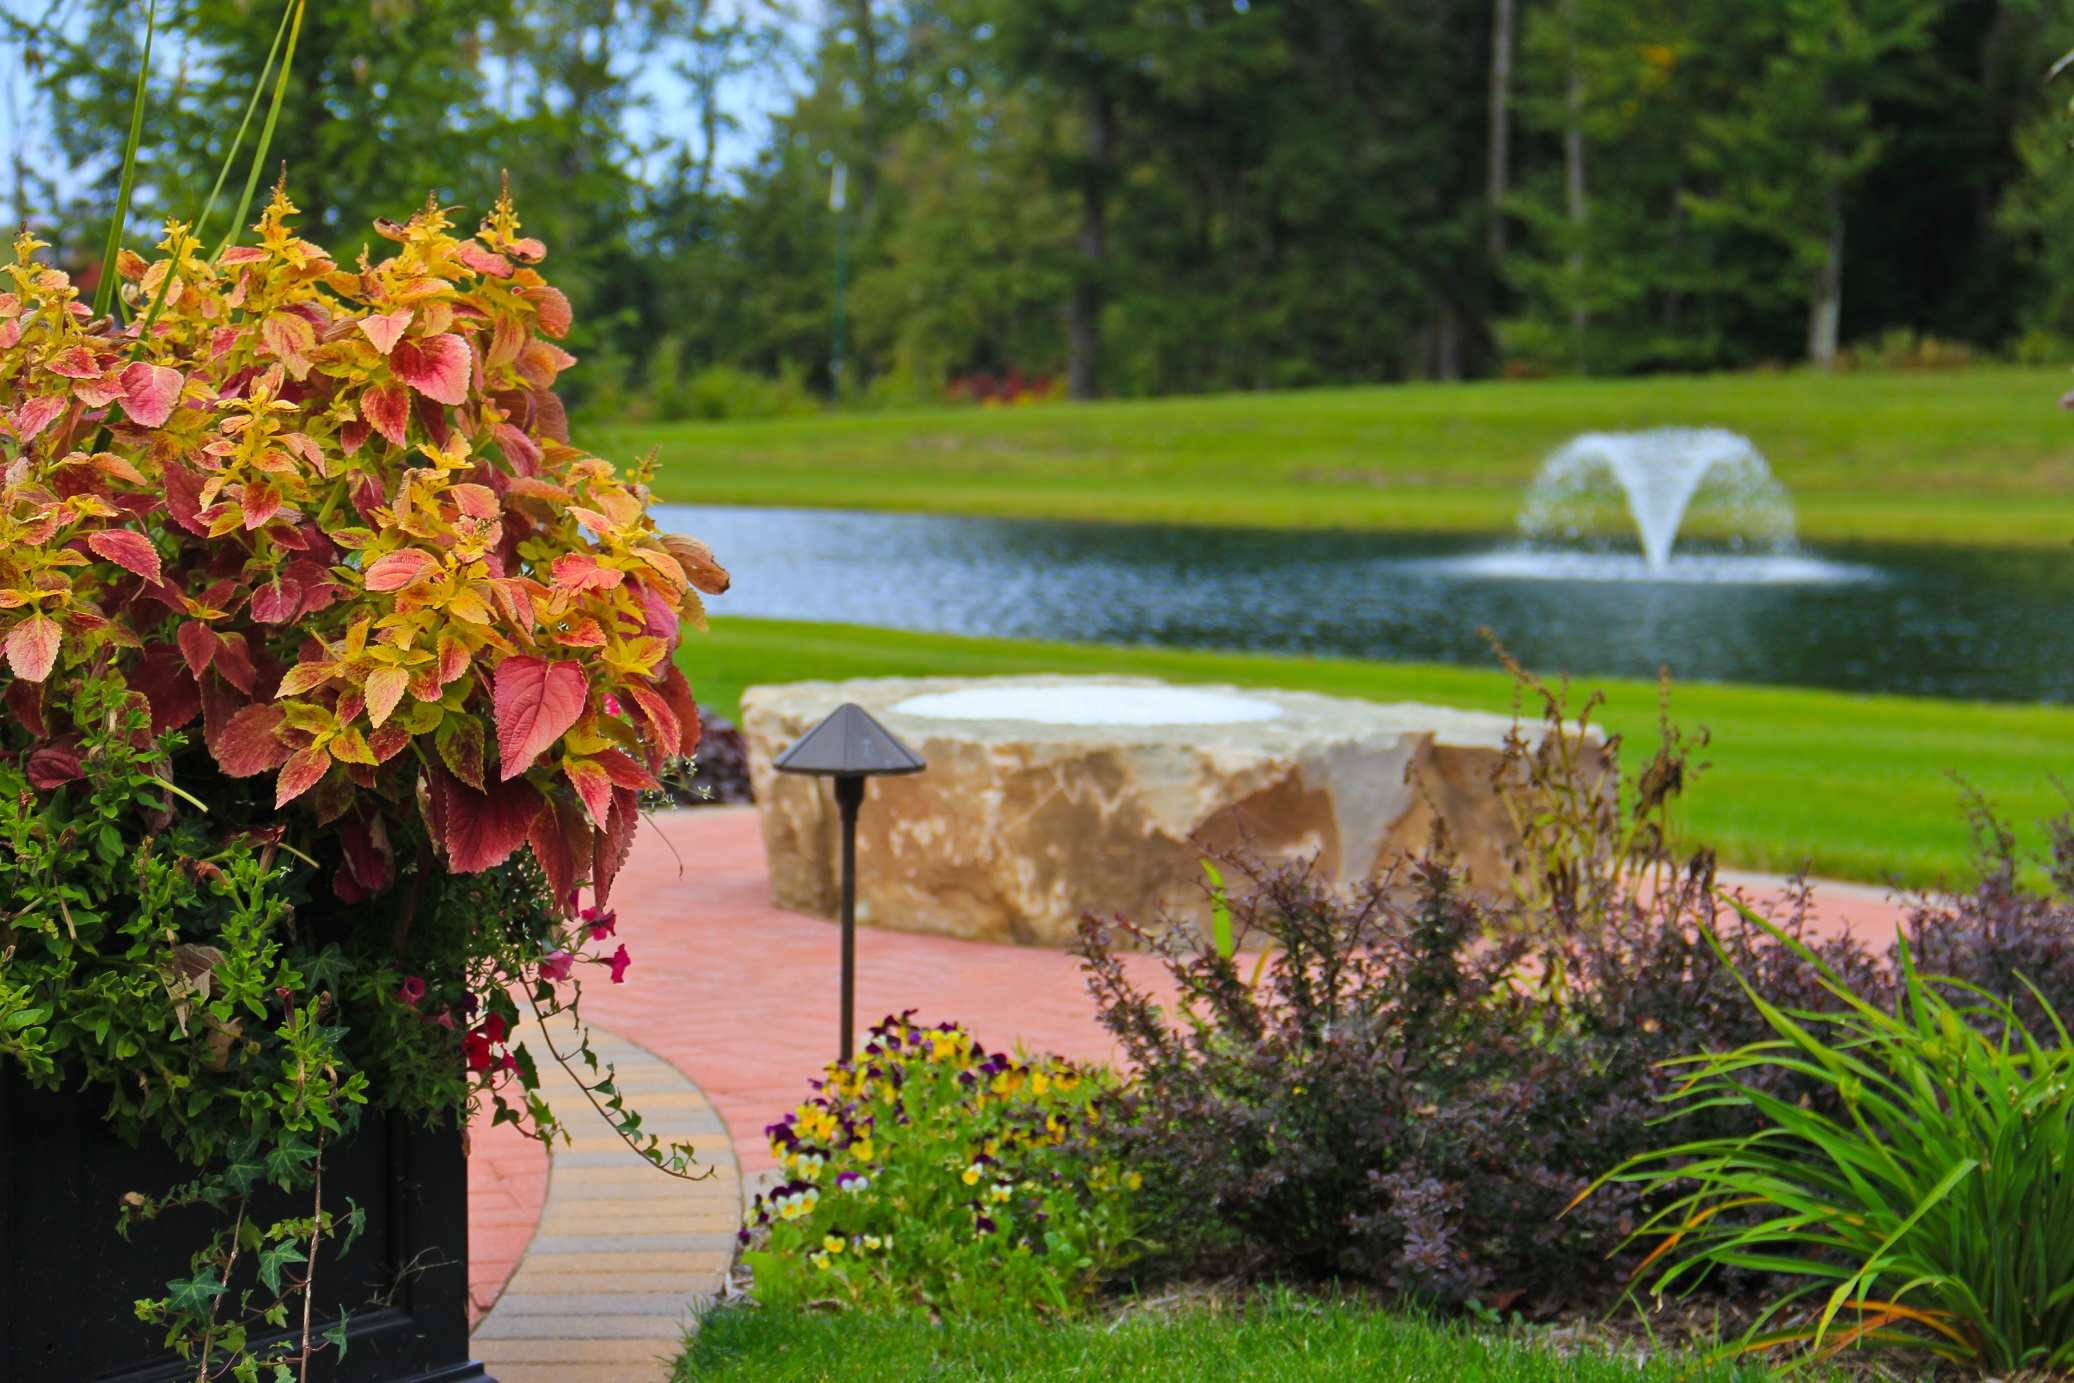 Landscape design ideas by landscapers near me in Rochester Hills MI